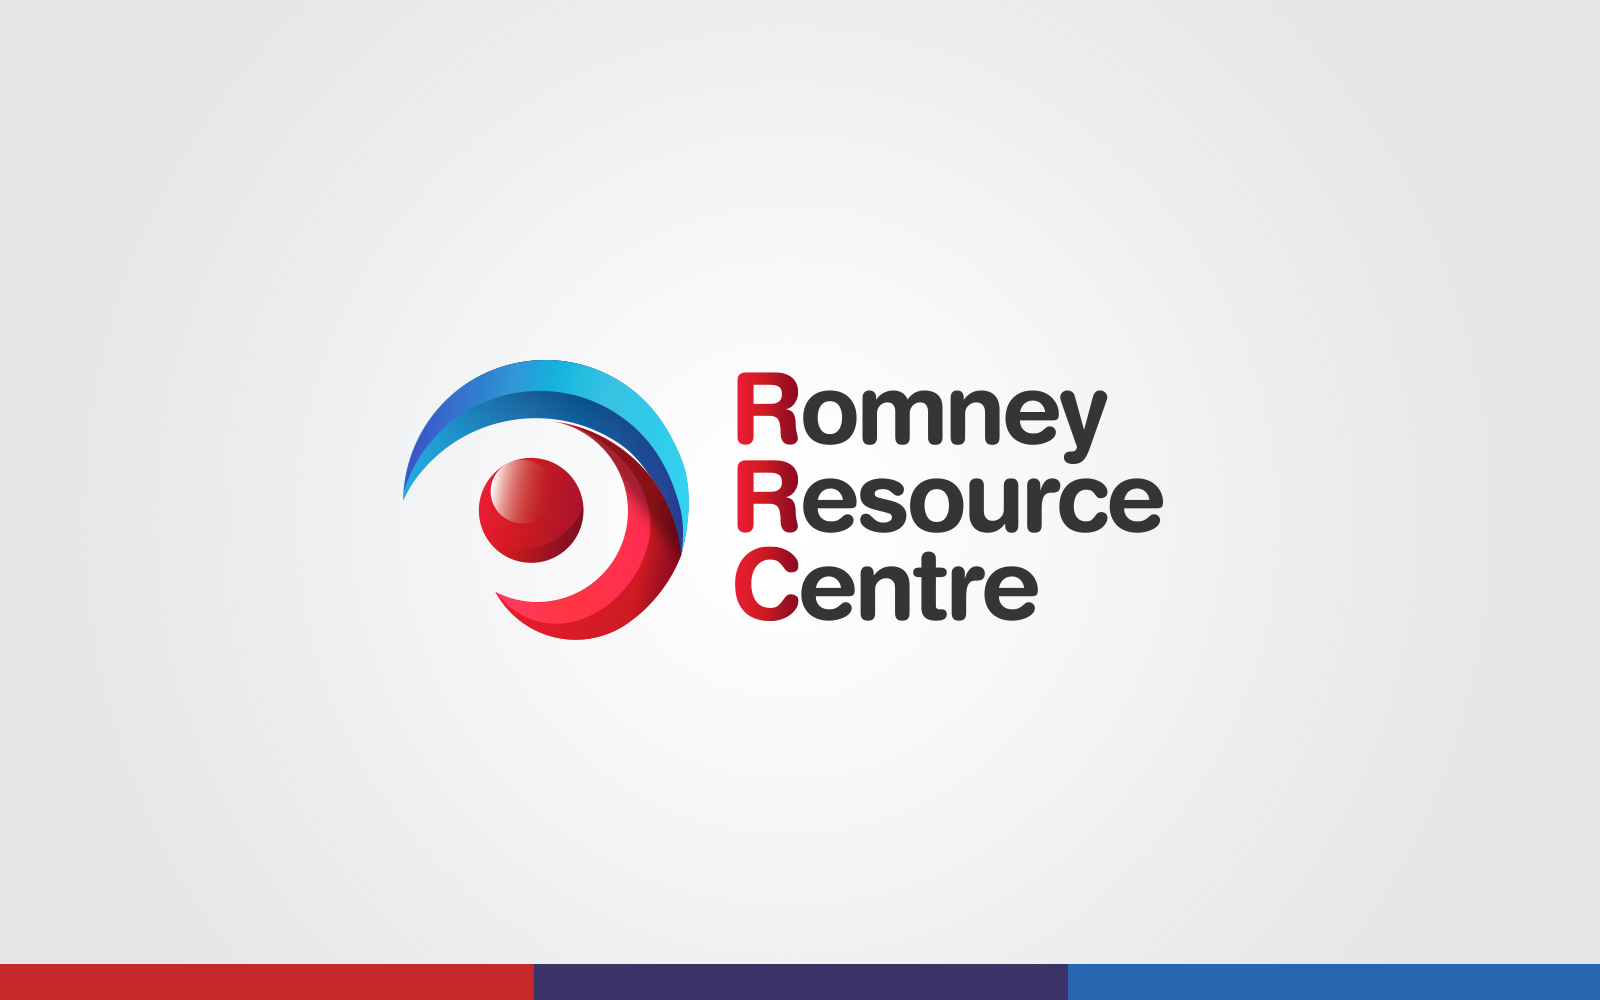 Romney Resource Centre logo